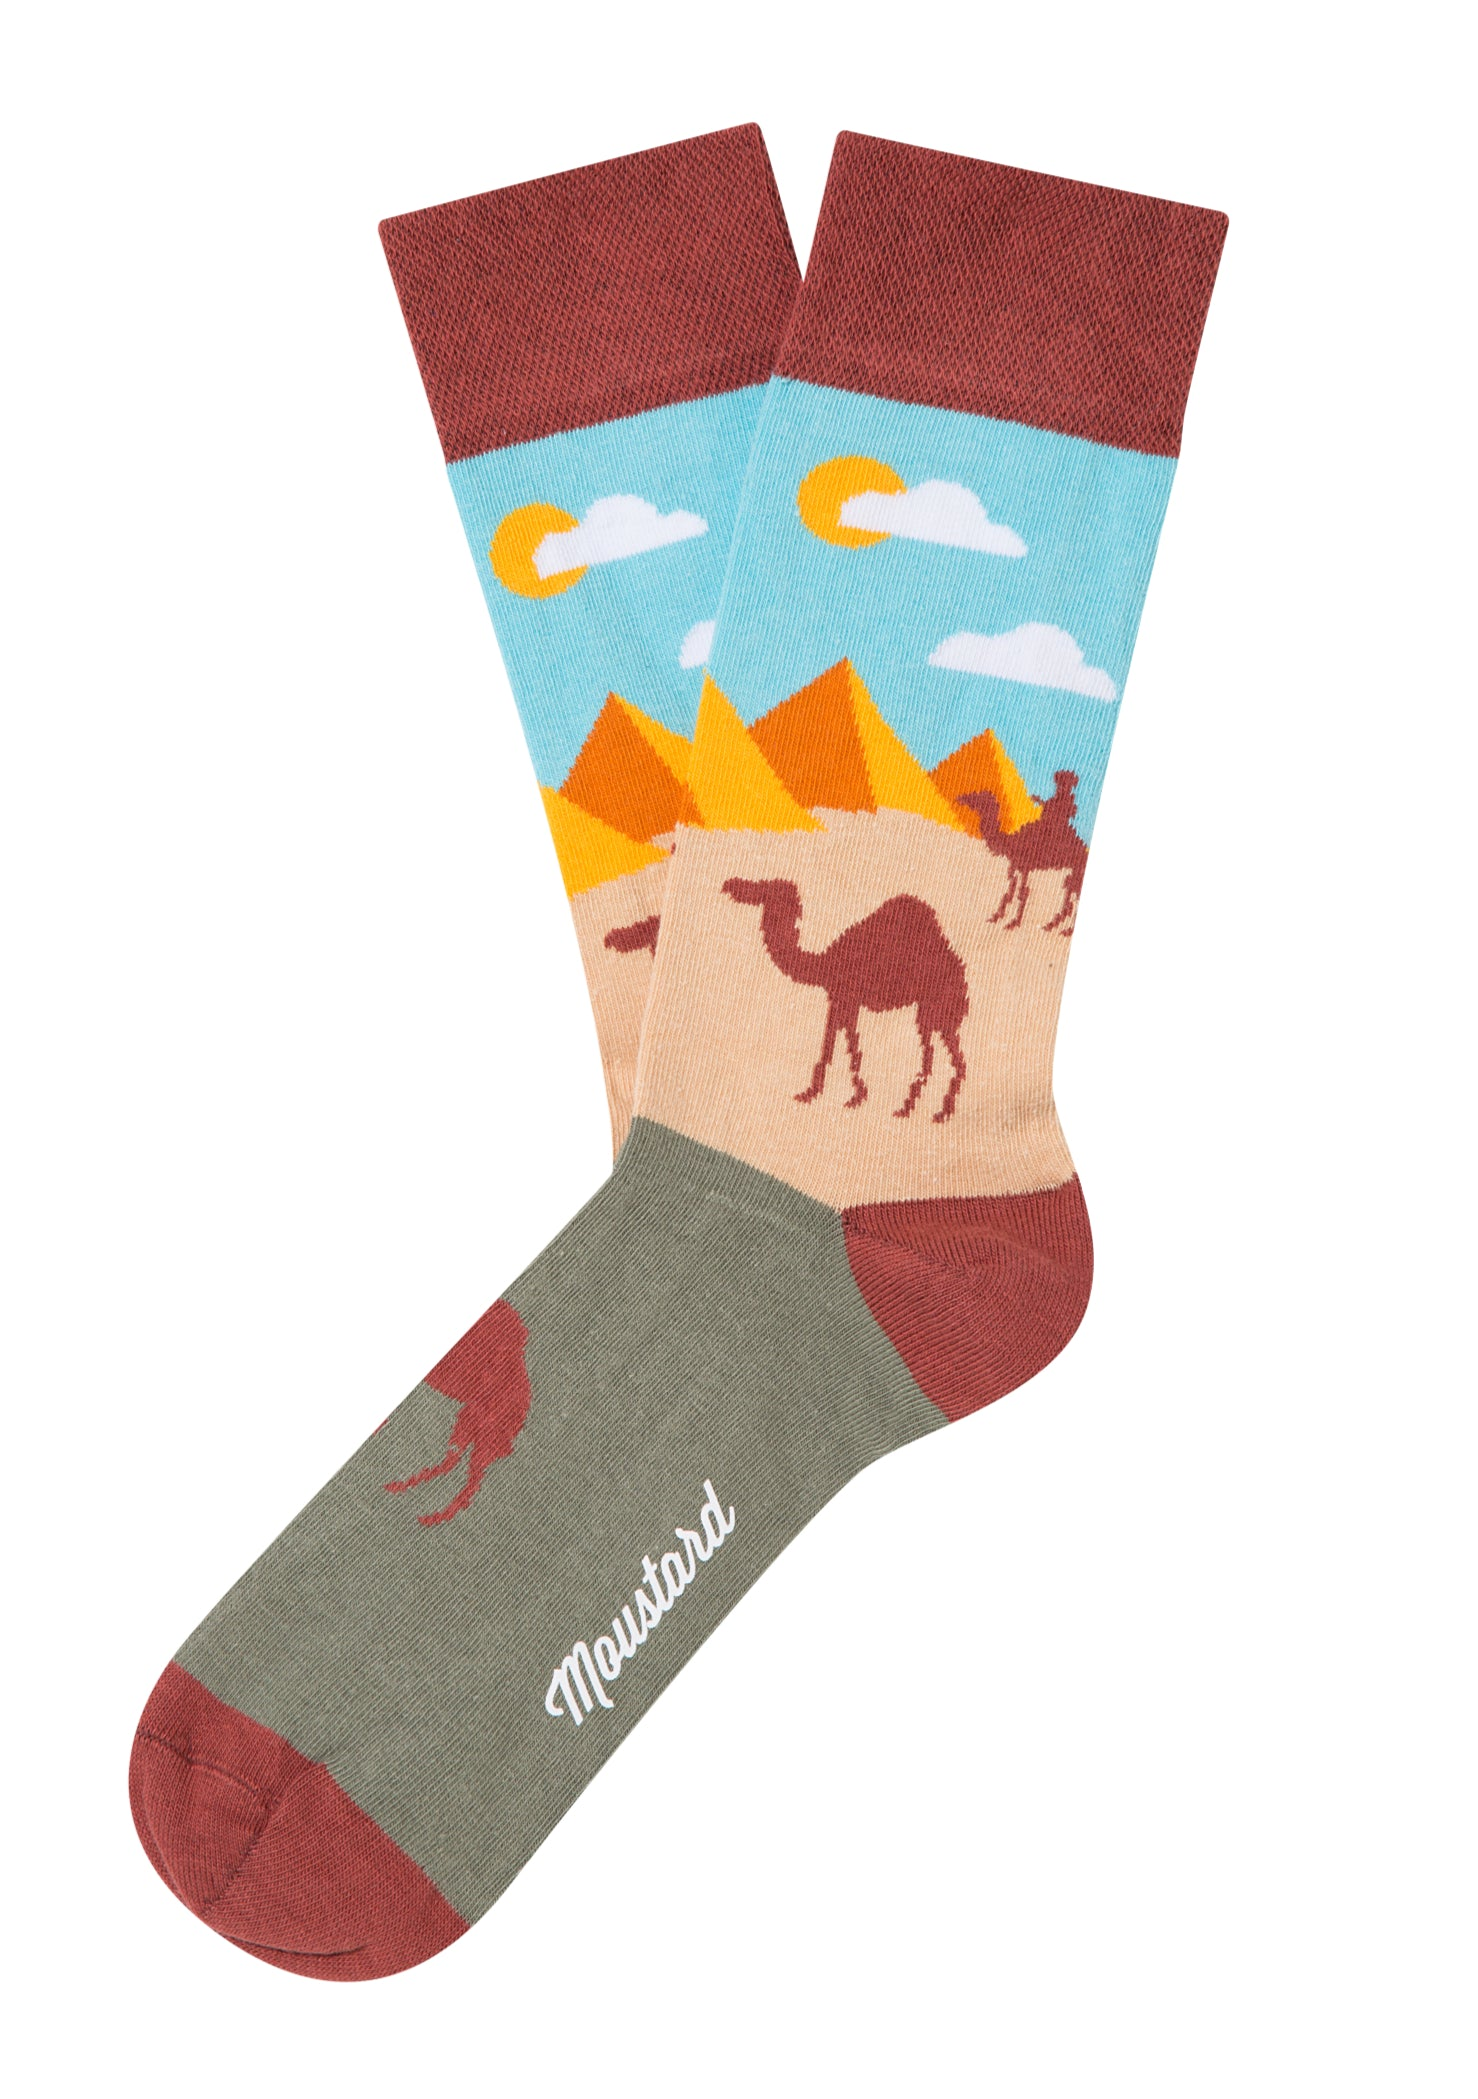 Pyramids and Camels Socks